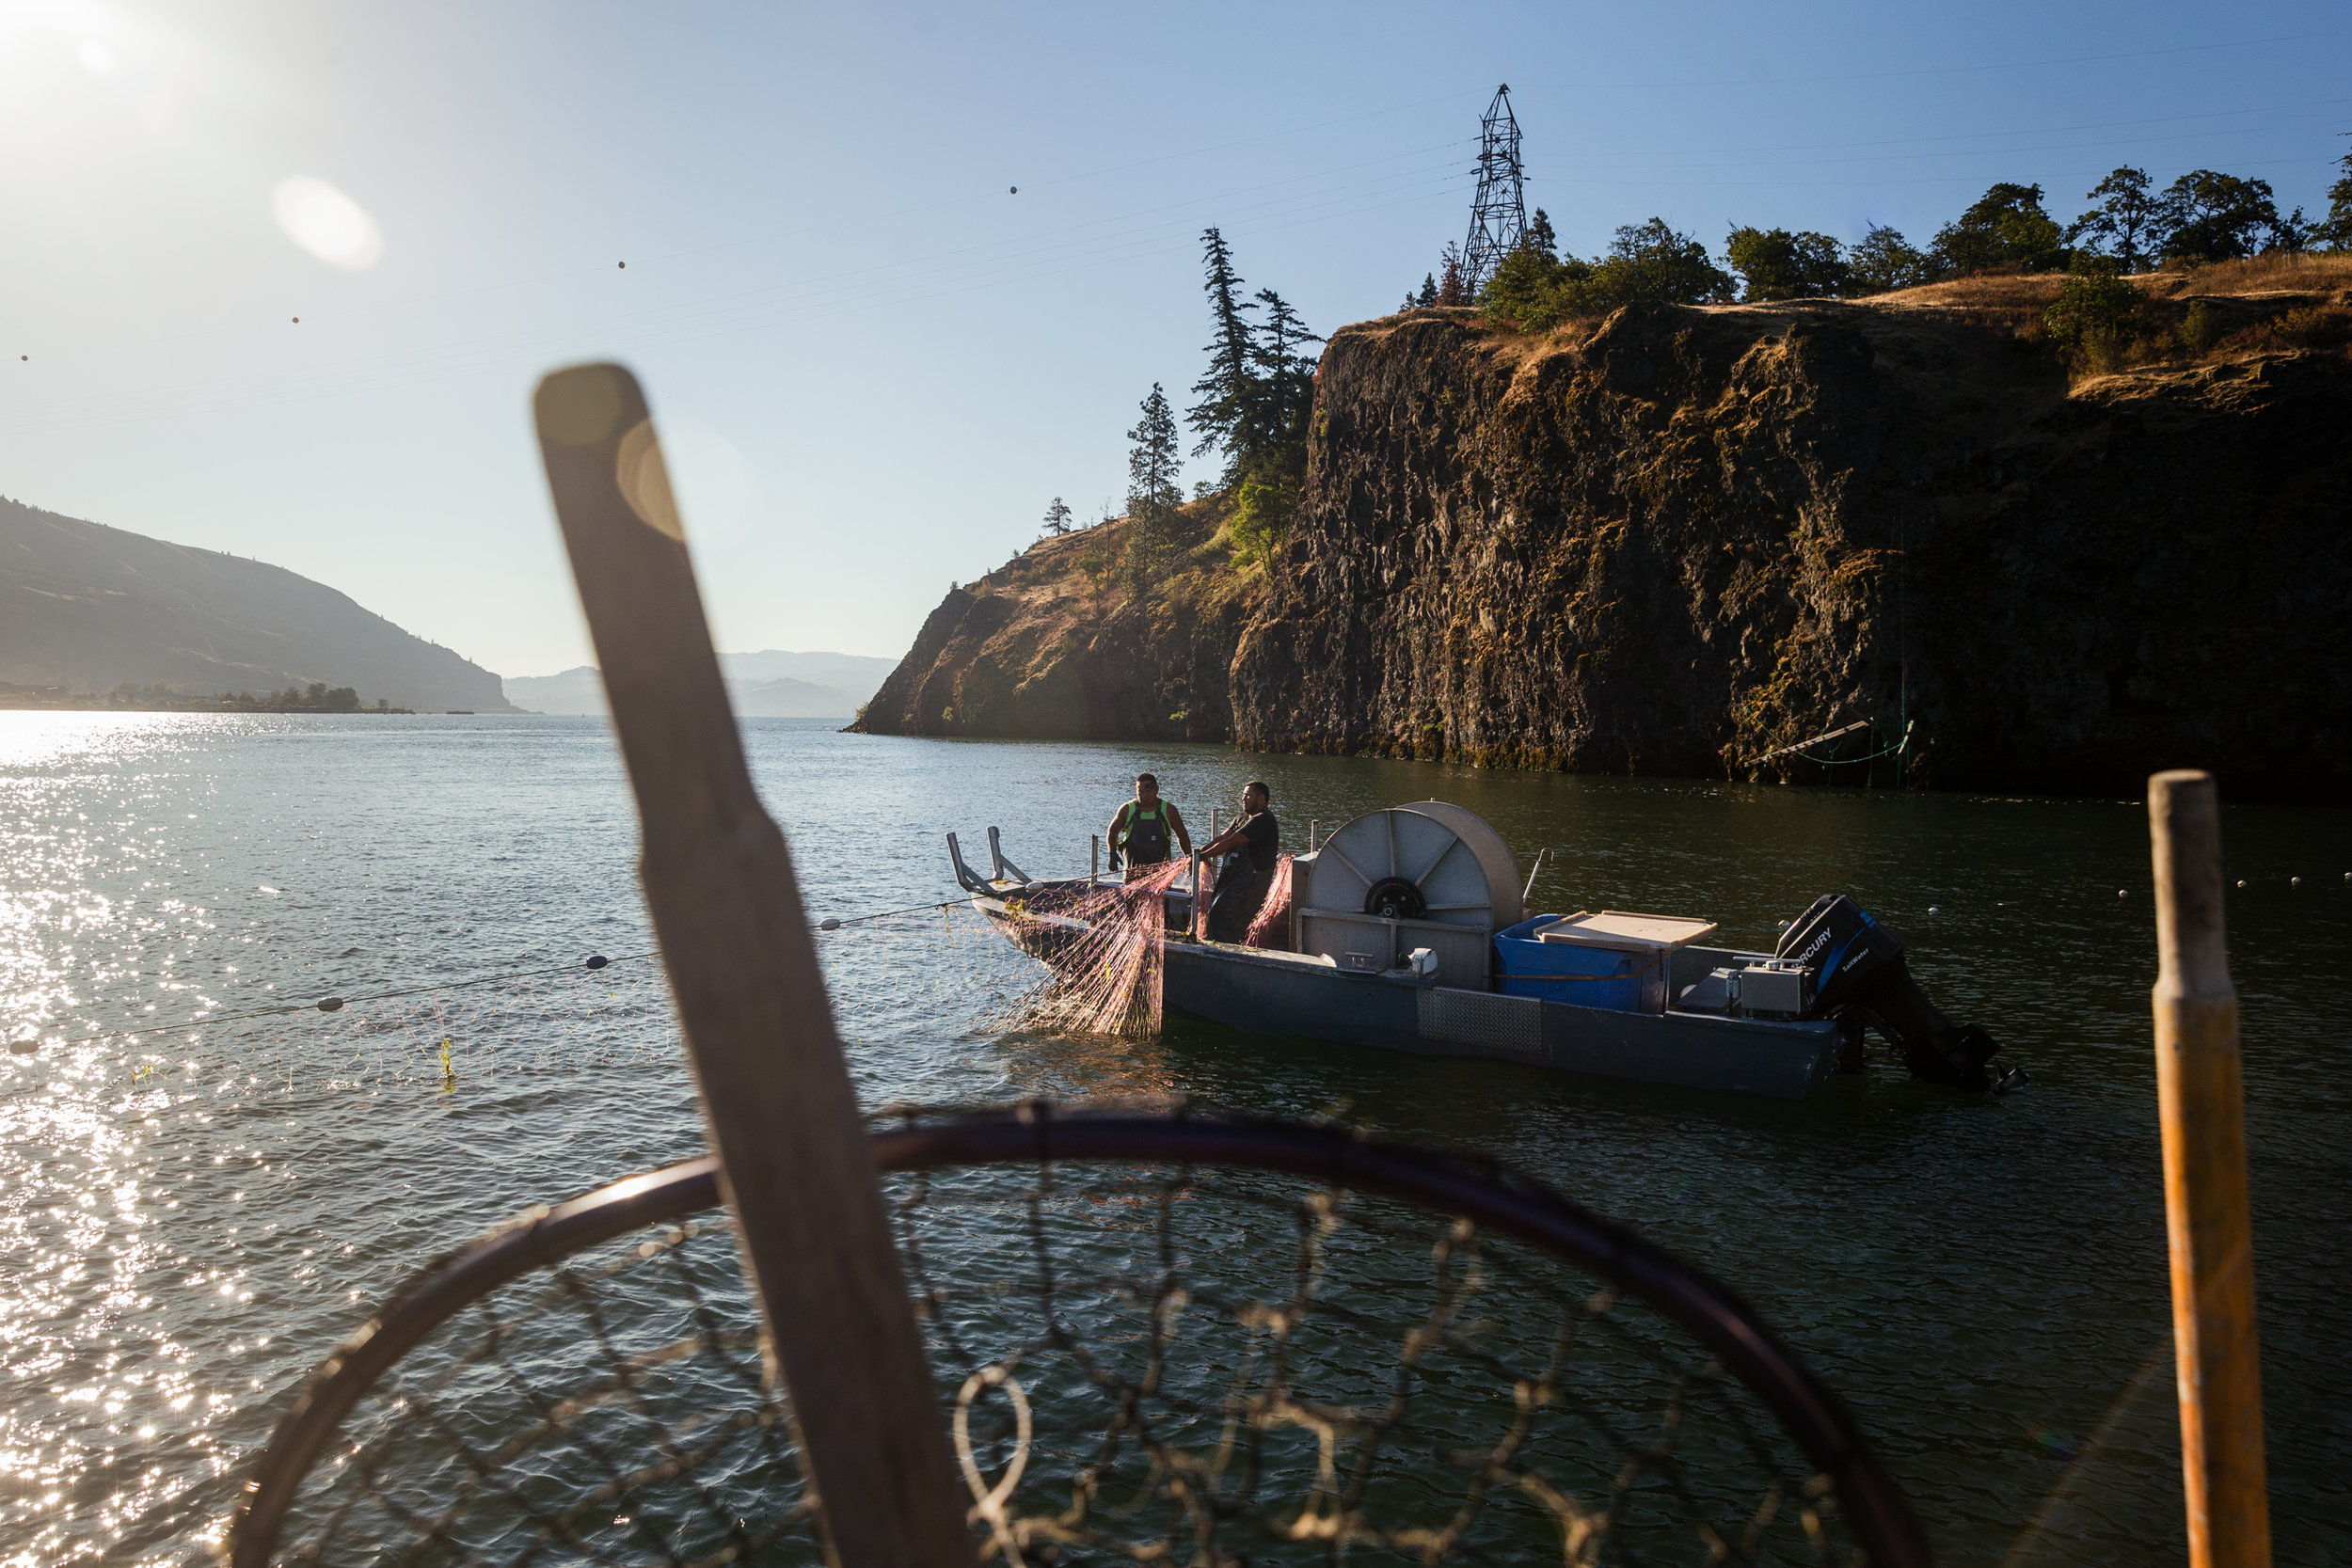 MOISER, OR – JULY 28th, 2016. Tribal Fishermen Sam George (black) and Howard Wahpat (green) use gill nets to commerical fish on the Columbia River near Mosier, OR. They were fishing on Friday June 3rd, the day that a Union Pacific oil train derailed outside of Mosier, OR and were some of the first on the scene. CREDIT: Leah Nash for The New York Times